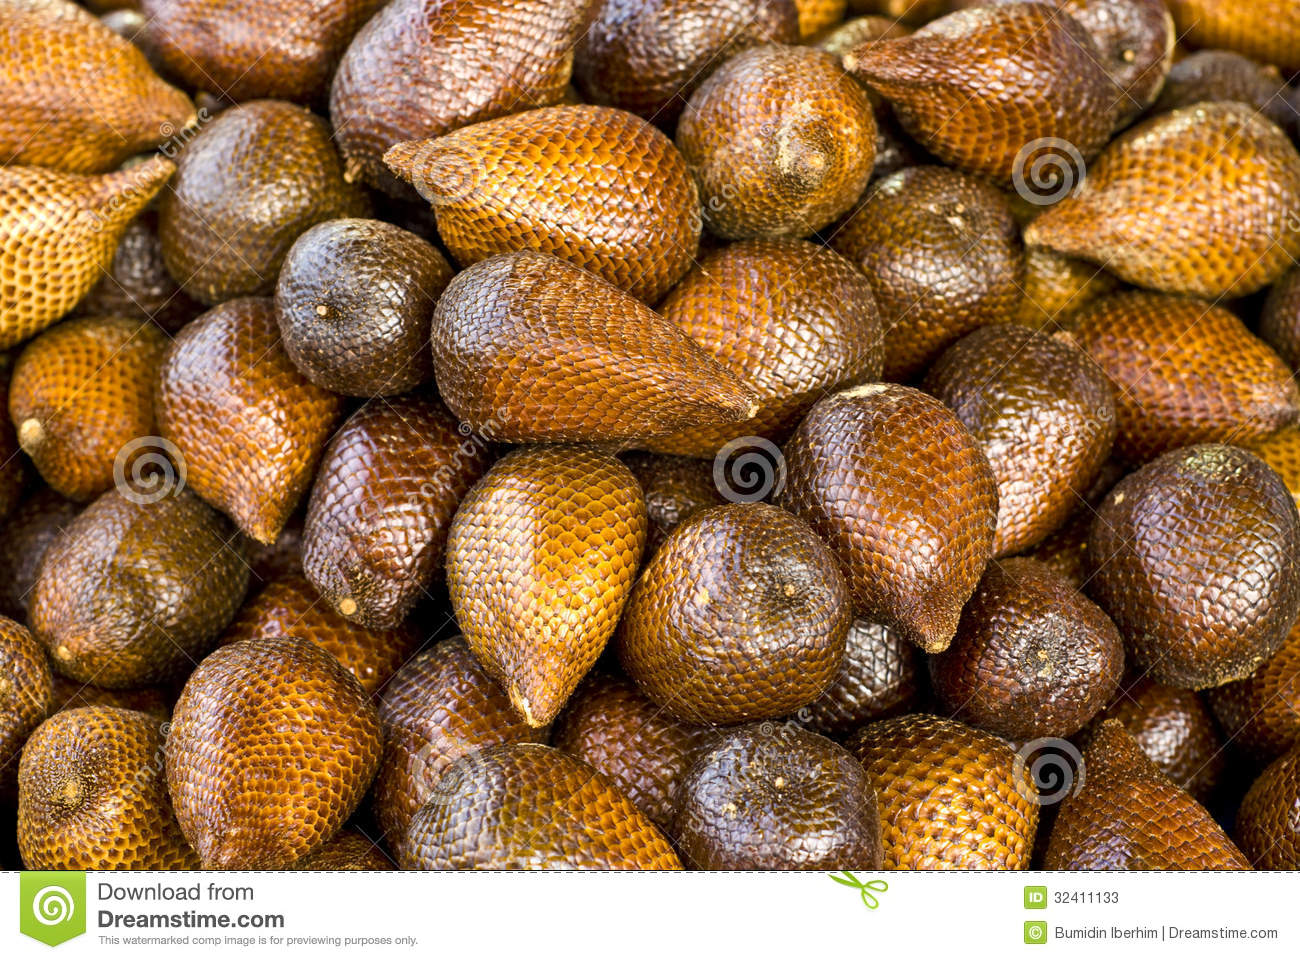 Salak stock image  Image of mineral, hard, fruits, indonesian - 32411133